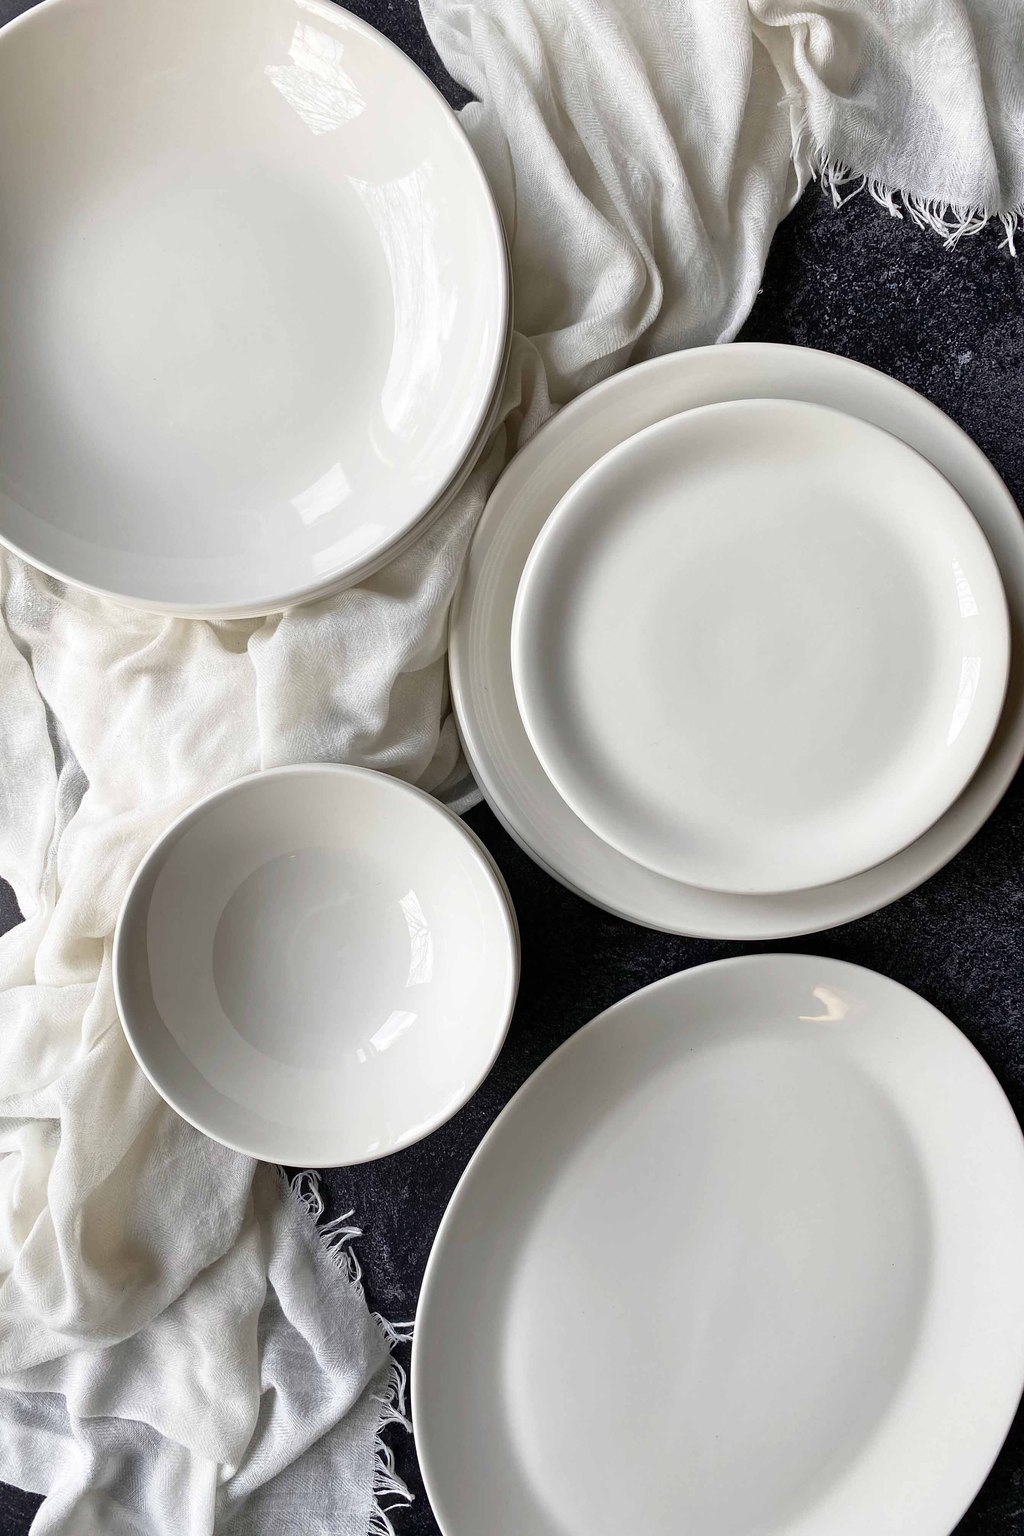 Vertical top-down image of assorted white dishes on a dark surface on a white towel.